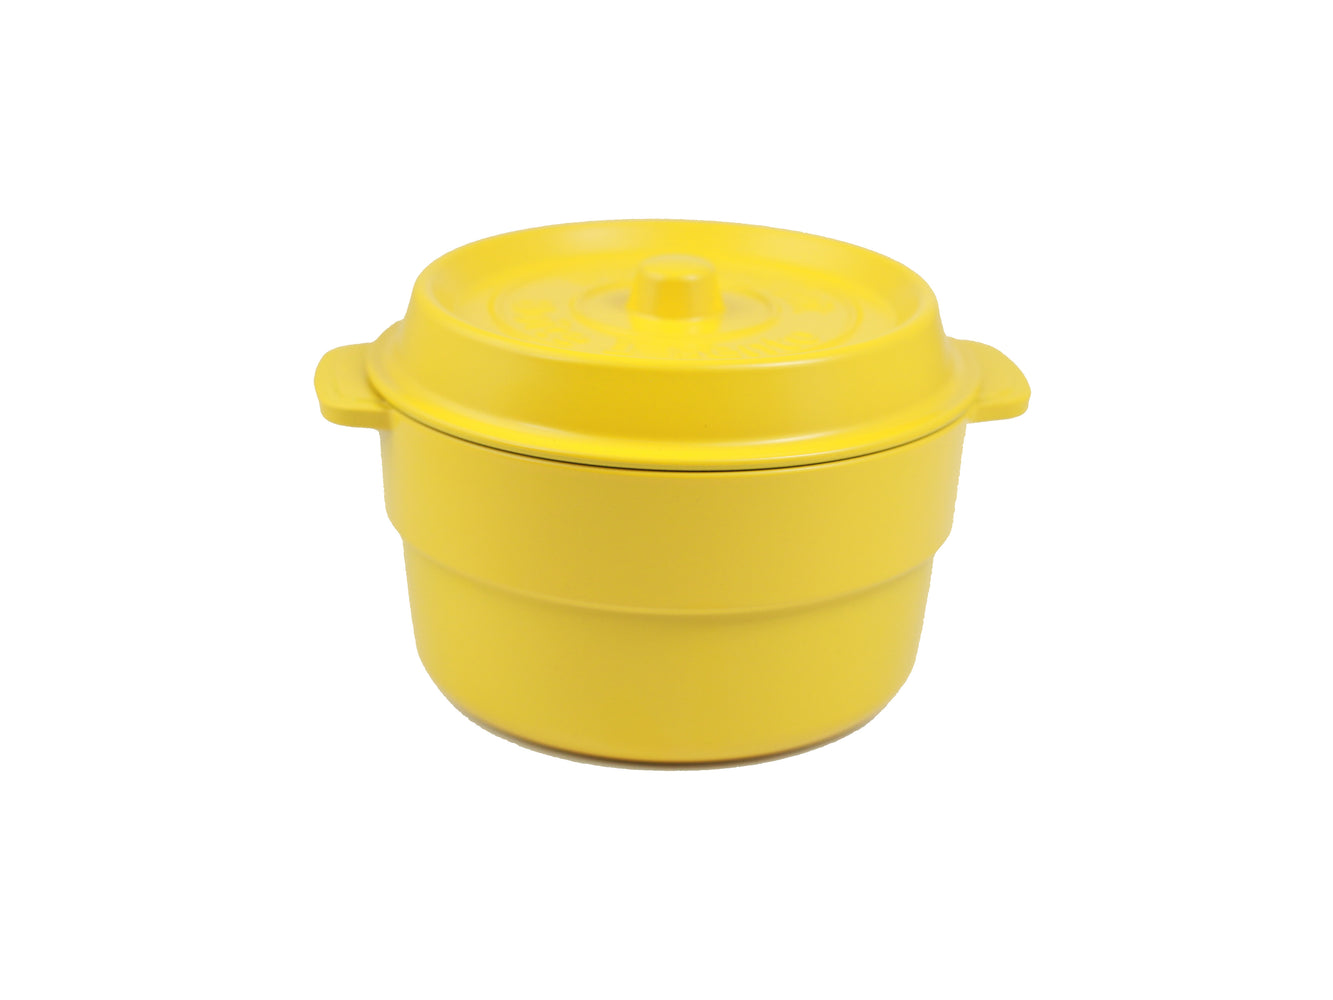 Cocopot Ronde Bento Box | Yellow by Takenaka - Bento&co Japanese Bento Lunch Boxes and Kitchenware Specialists